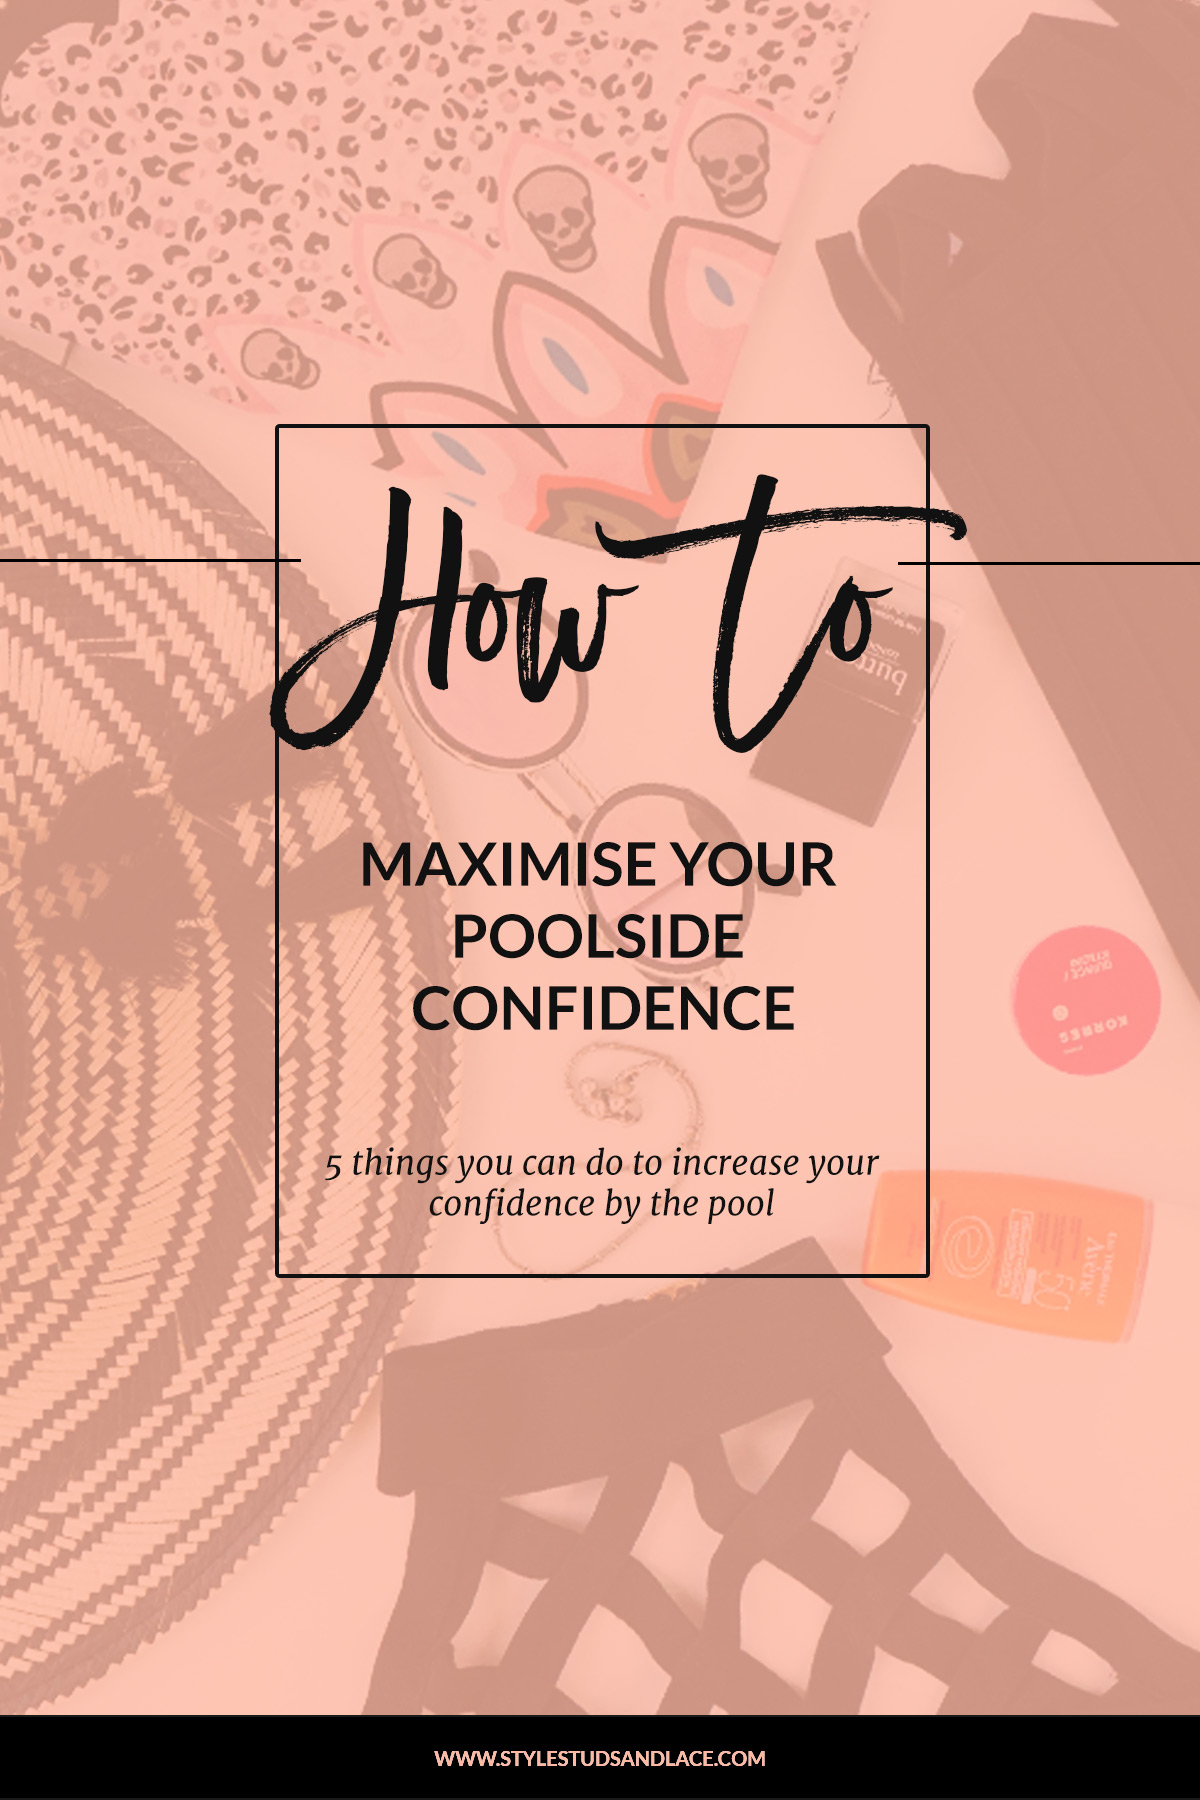 5 things you can do to boost your confidence by the pool | Follow these 5 tips to maximize your self-confidence when wearing swimwear.